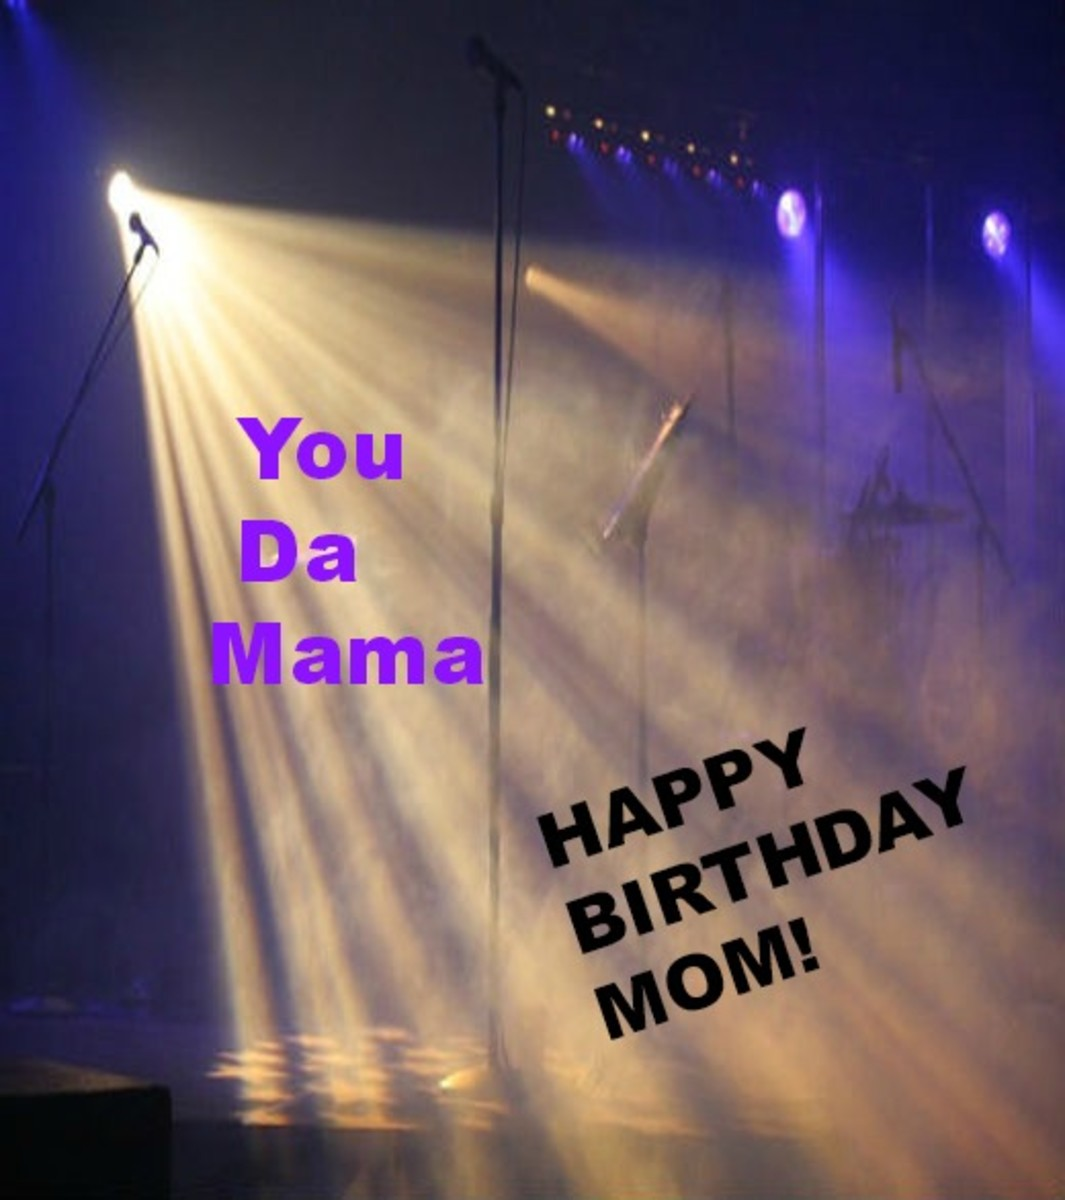 Inside Rapper Birthday Wishes for Mom